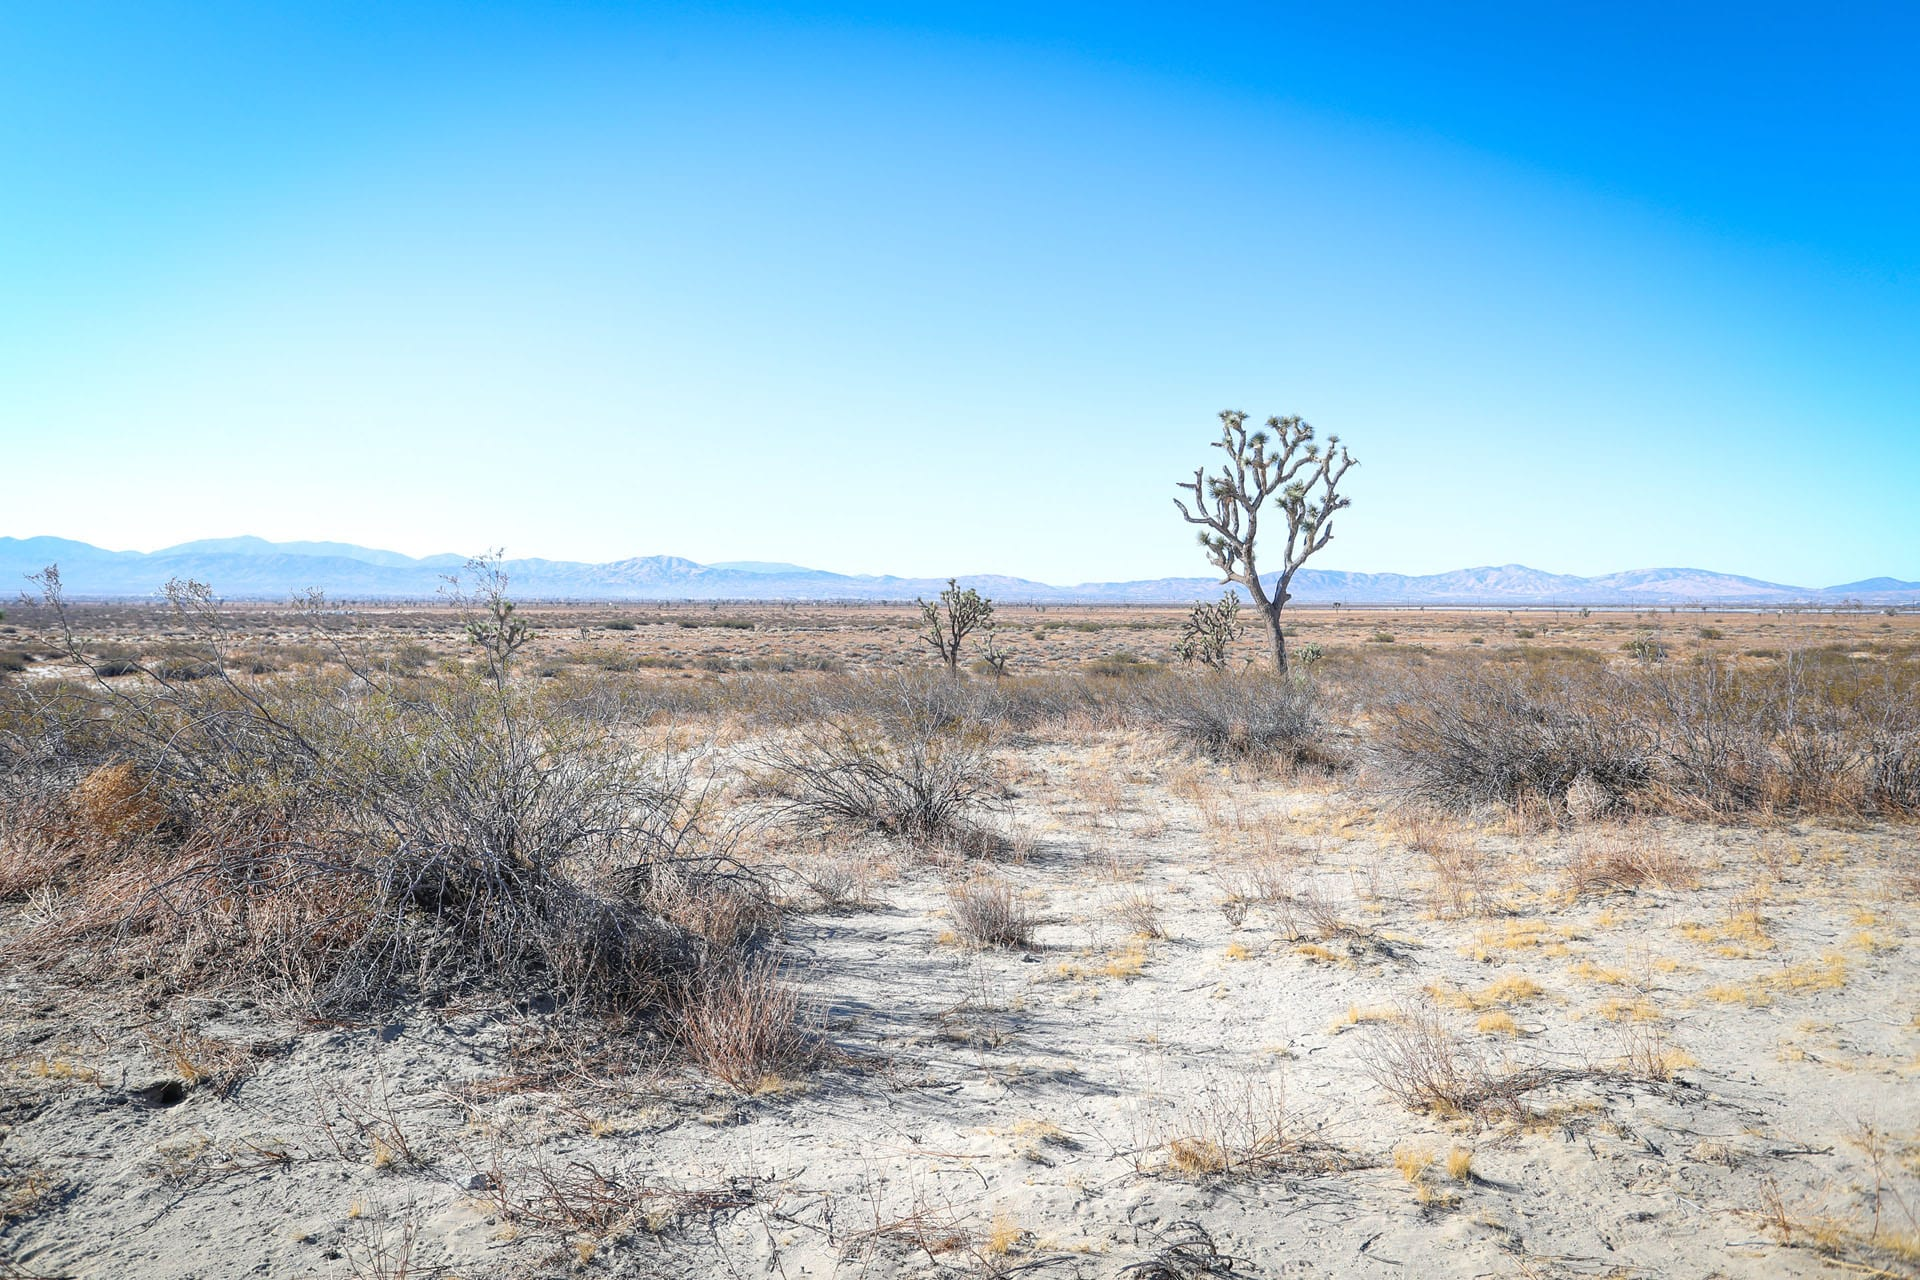 Desert with joshua trees